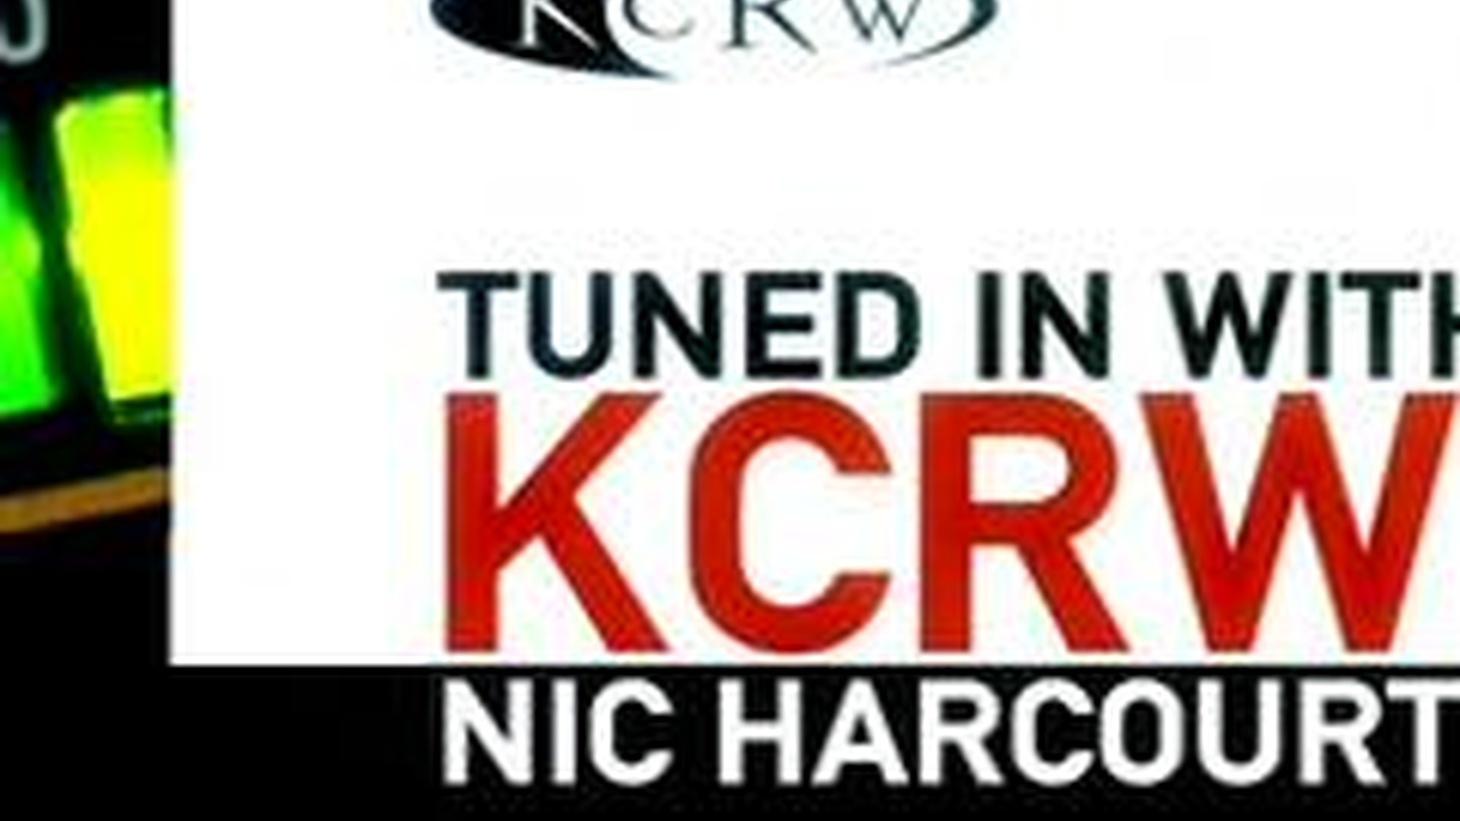 """The latest episode of Tuned In With KCRW's Nic Harcourt features Lisa Hannigan (""""Ocean and a Rock"""" from SEA SEW), Conor Oberst (""""Cape Canaveral"""" from his self-titled album), The Mostar Diving Club (""""Honey Tree"""" from DON YOUR SUIT OF LIGHTS), and the Friendly Fires (""""Paris"""" from their self-titled album). Download this video as well as daily free music tracks at http://www.KCRW.com."""